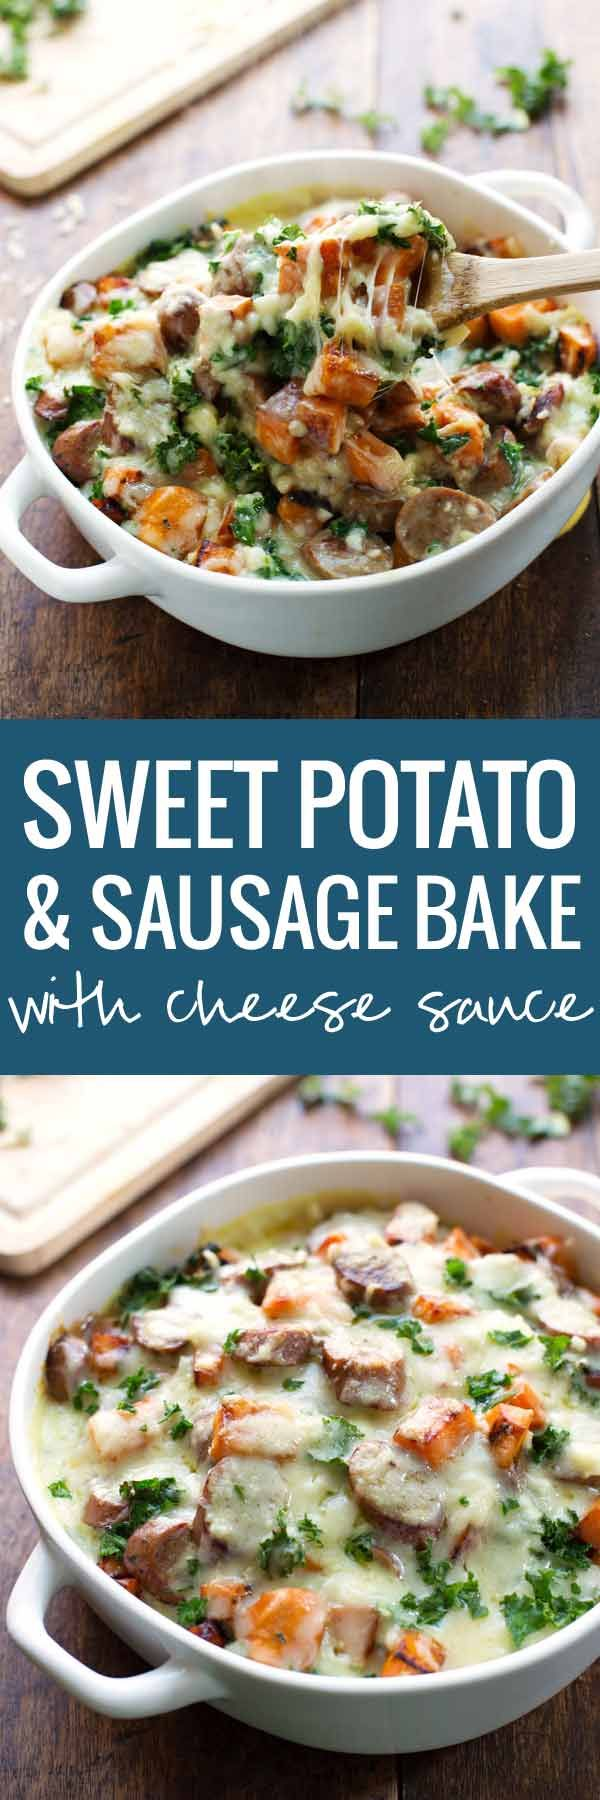 Sweet Potato, Kale, and Sausage Bake with White Cheese Sauce - comfort food featuring a handful of pantry staples and a few super healthy ingredients.   pinchofyum.com